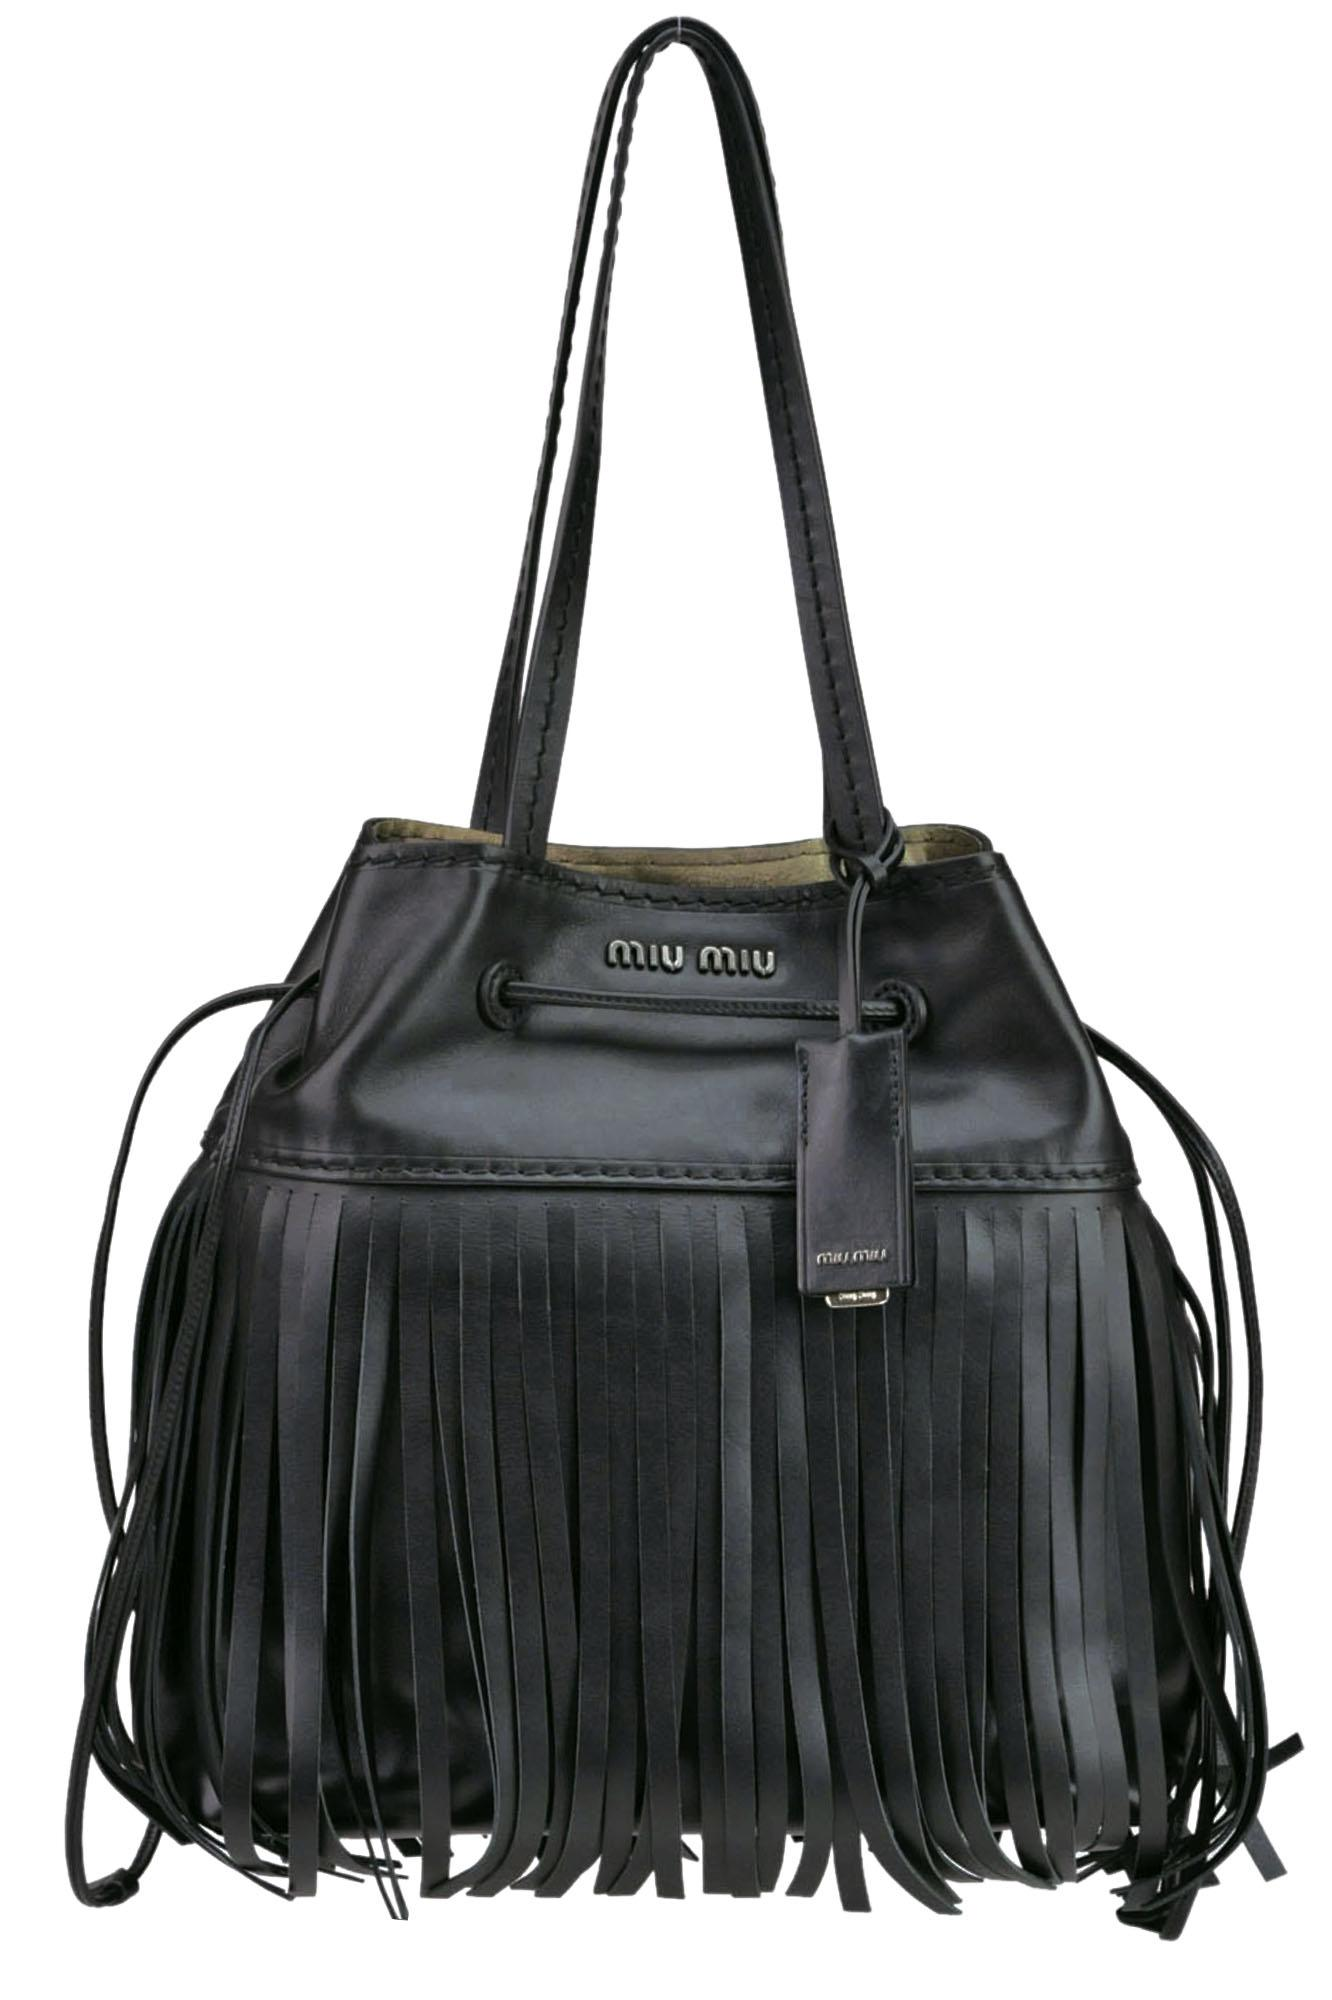 013767a184a3 Miu Miu City Calf Fringed Bag in Black - Lyst